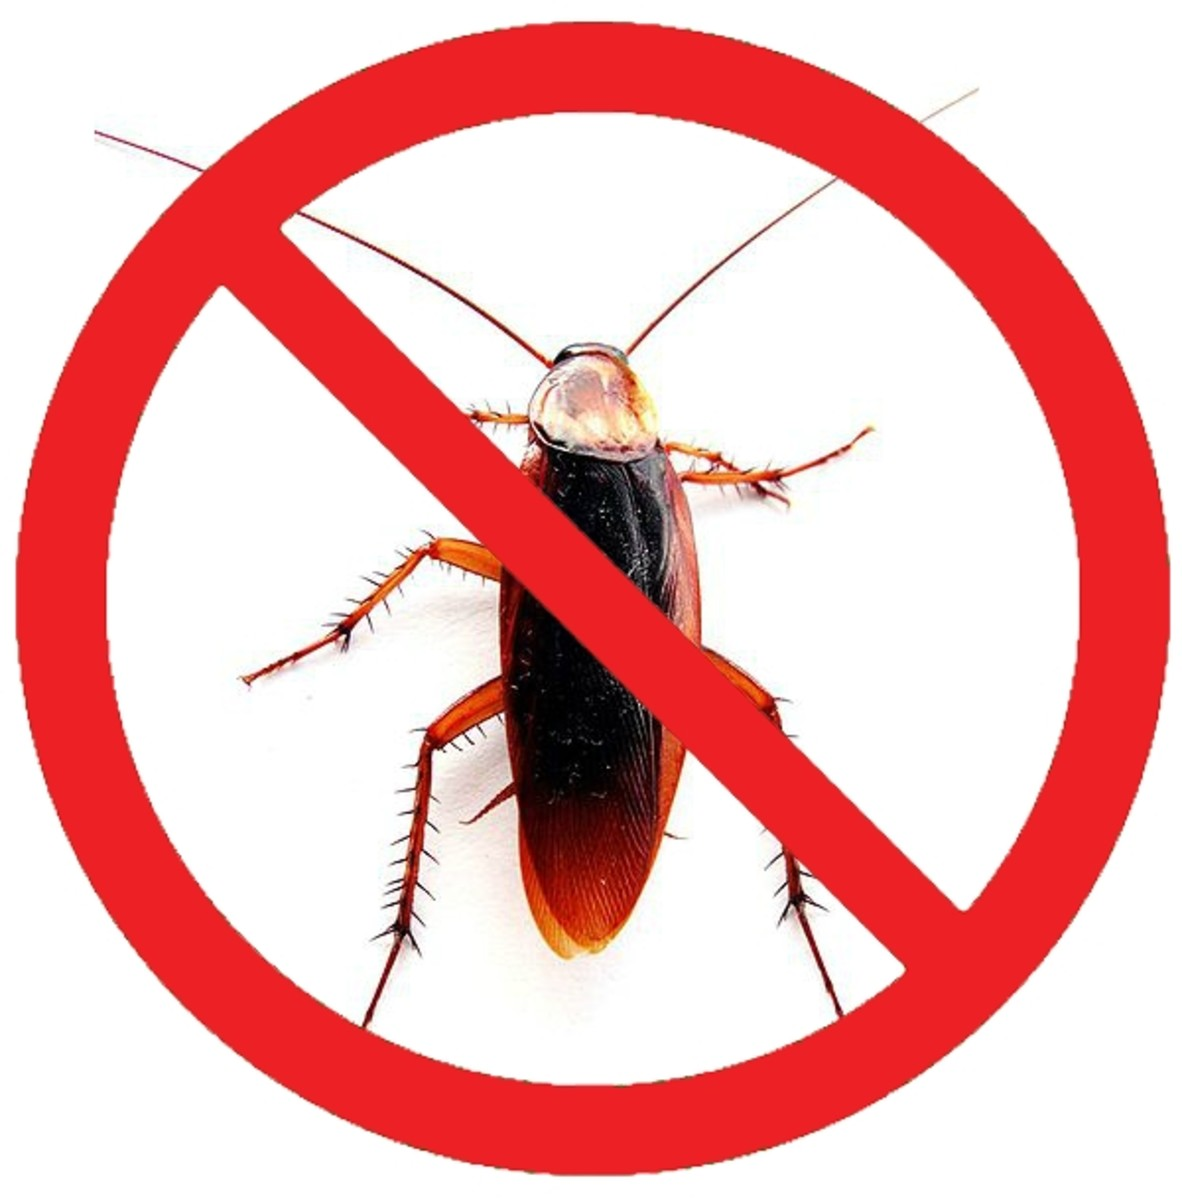 get-rid-of-roaches-using-home-methods